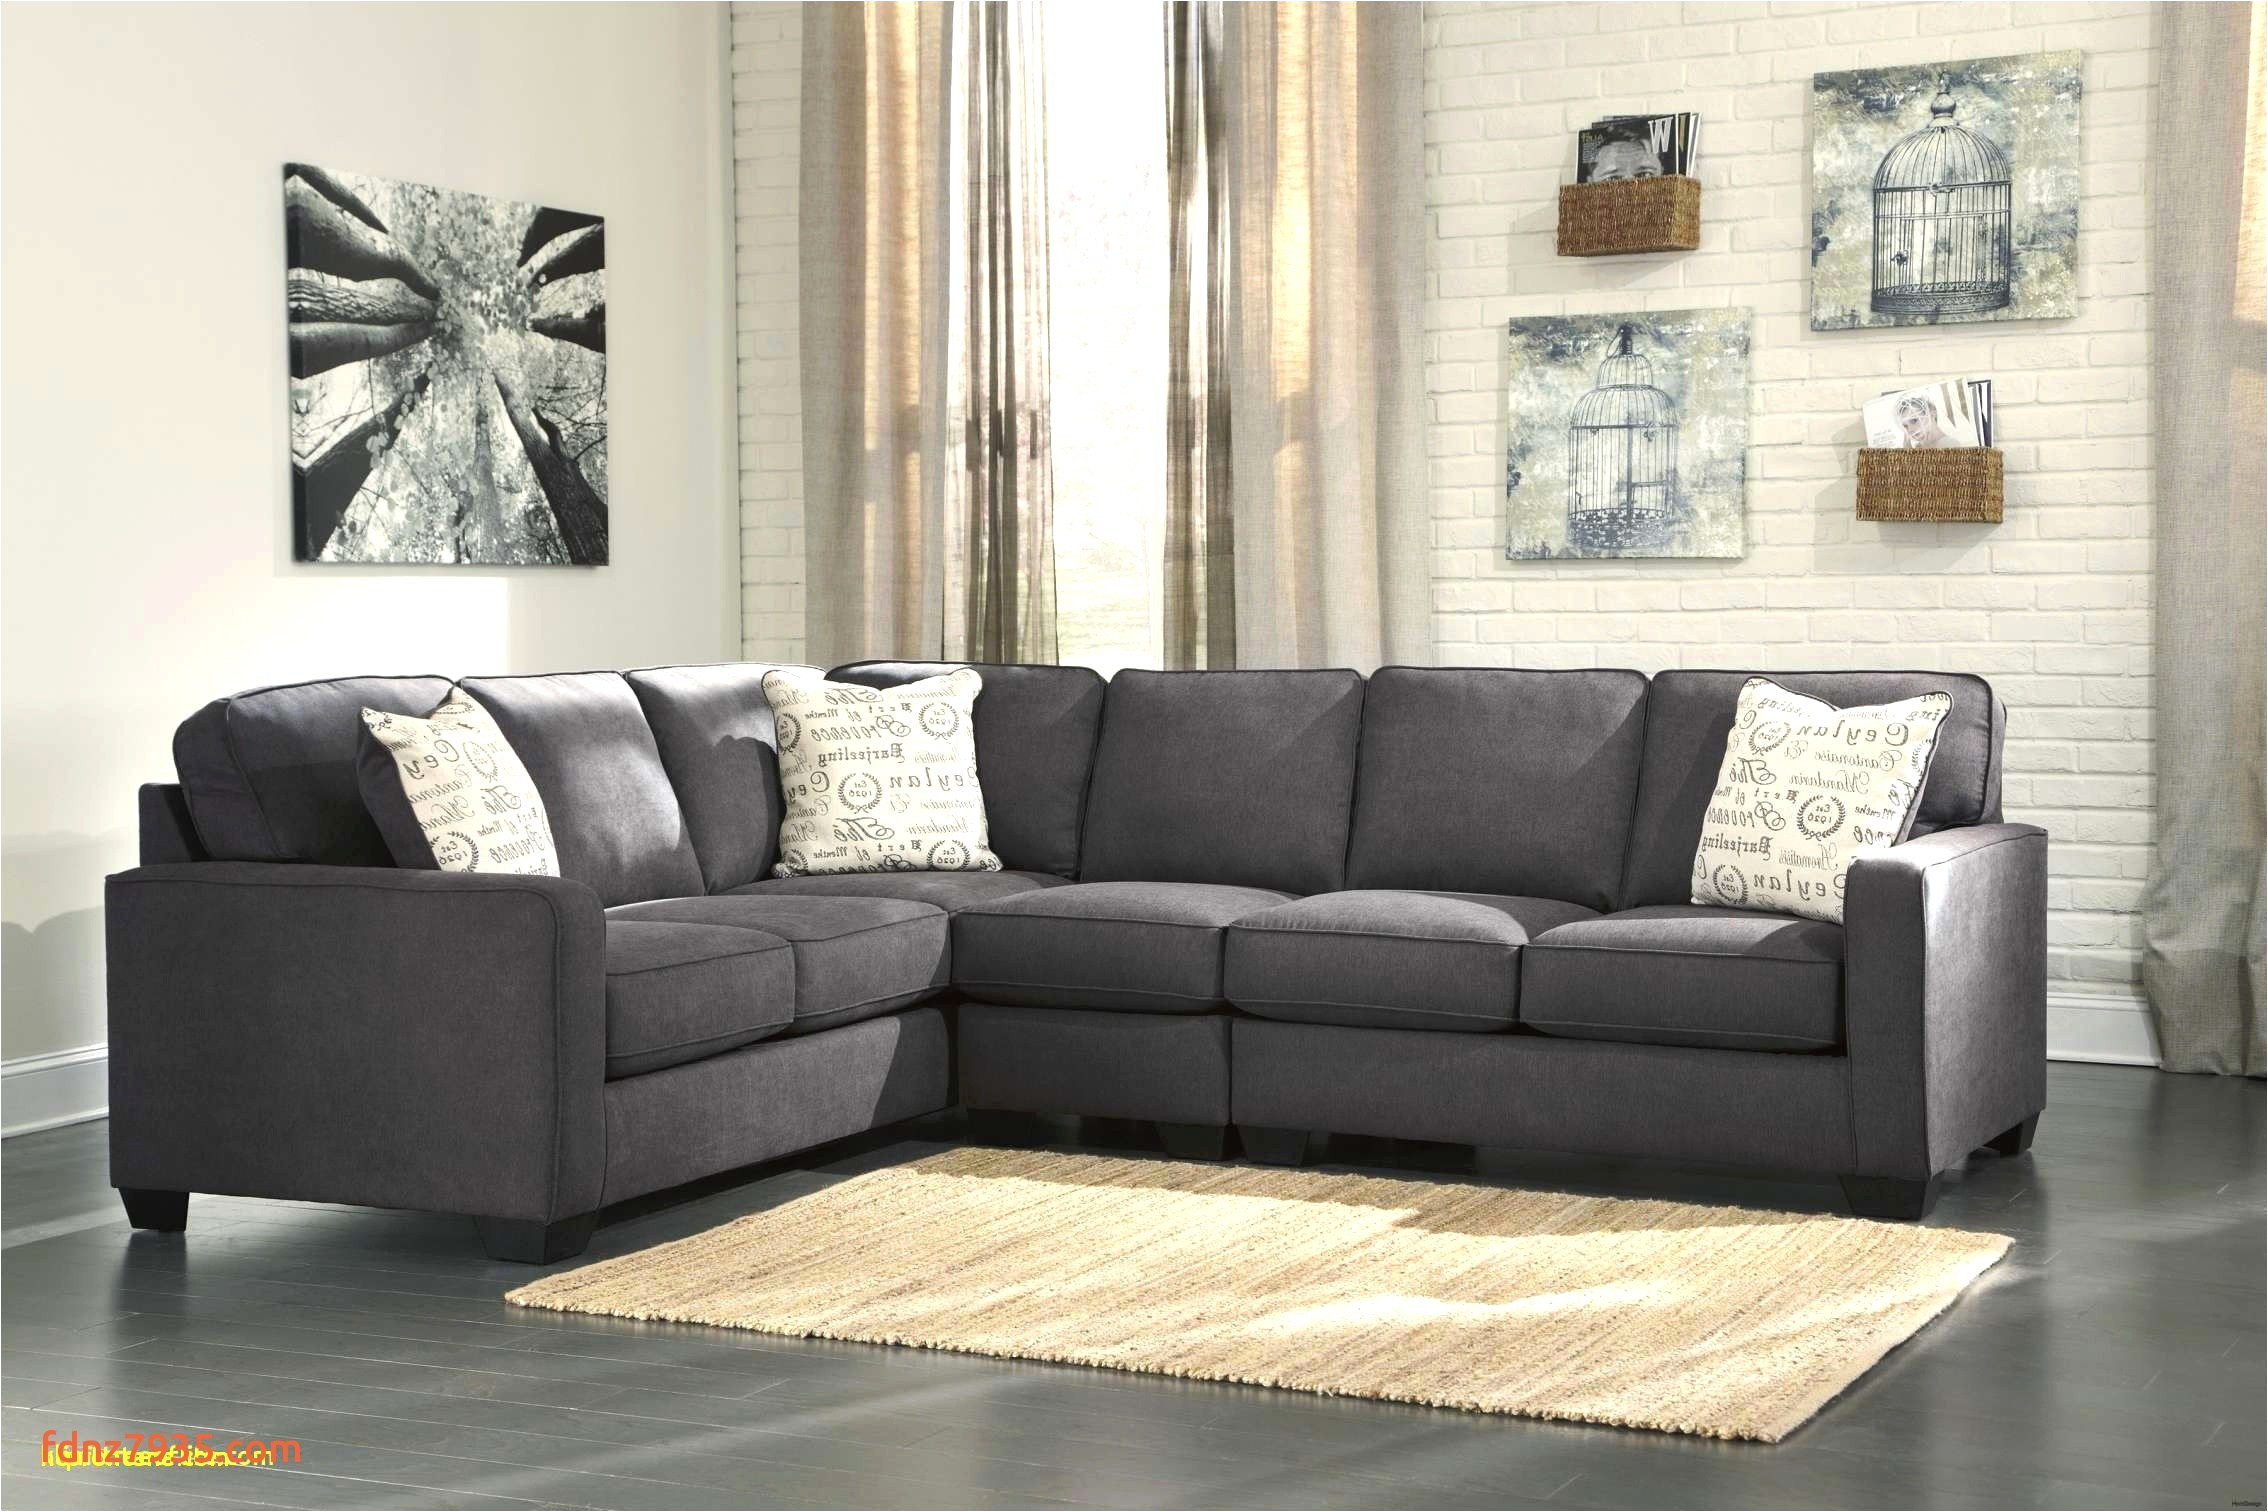 alenya flip charcoal sectional home design 3 piece sofa 0d 30 lovely small living room